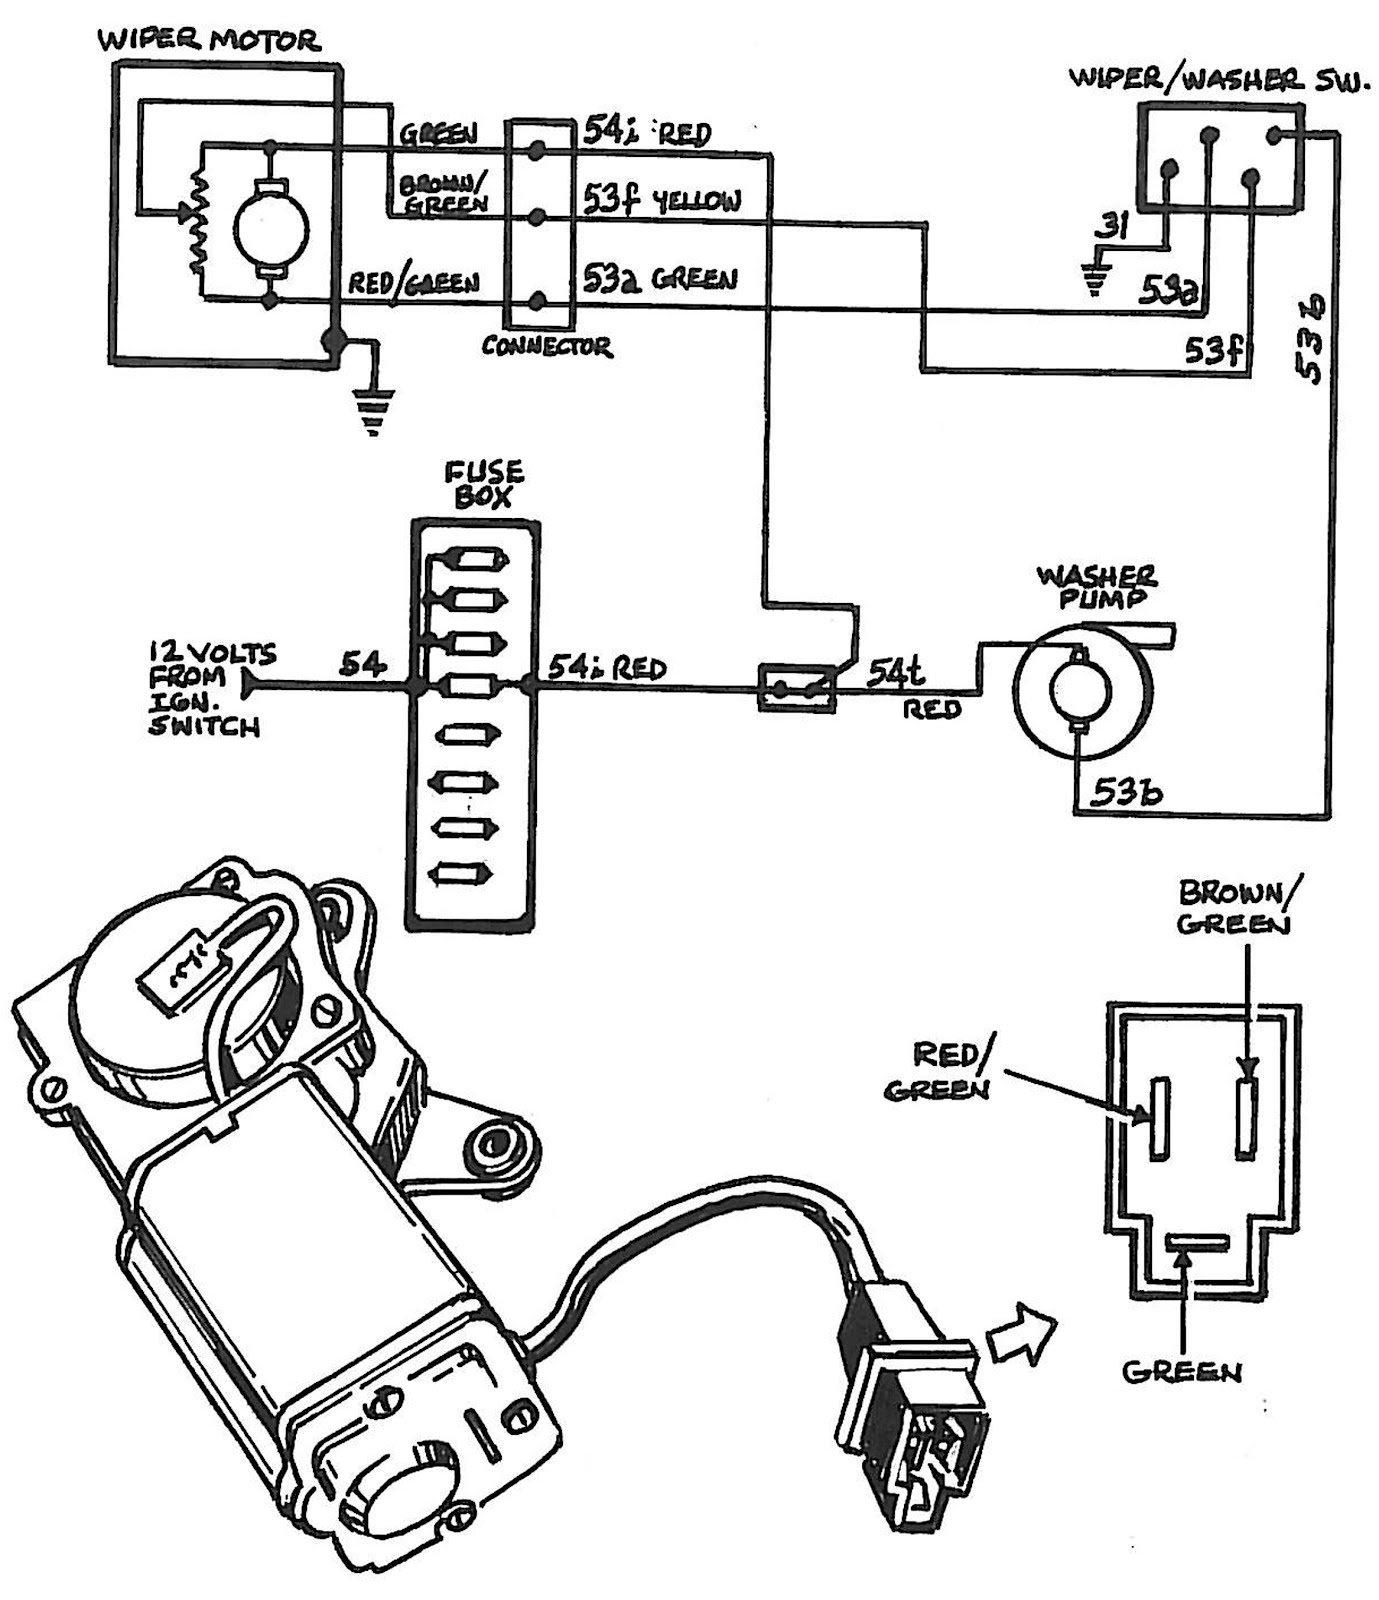 s10 windshield wiring diagram car wiper wiring diagram dat wiring diagrams  car wiper wiring diagram dat wiring